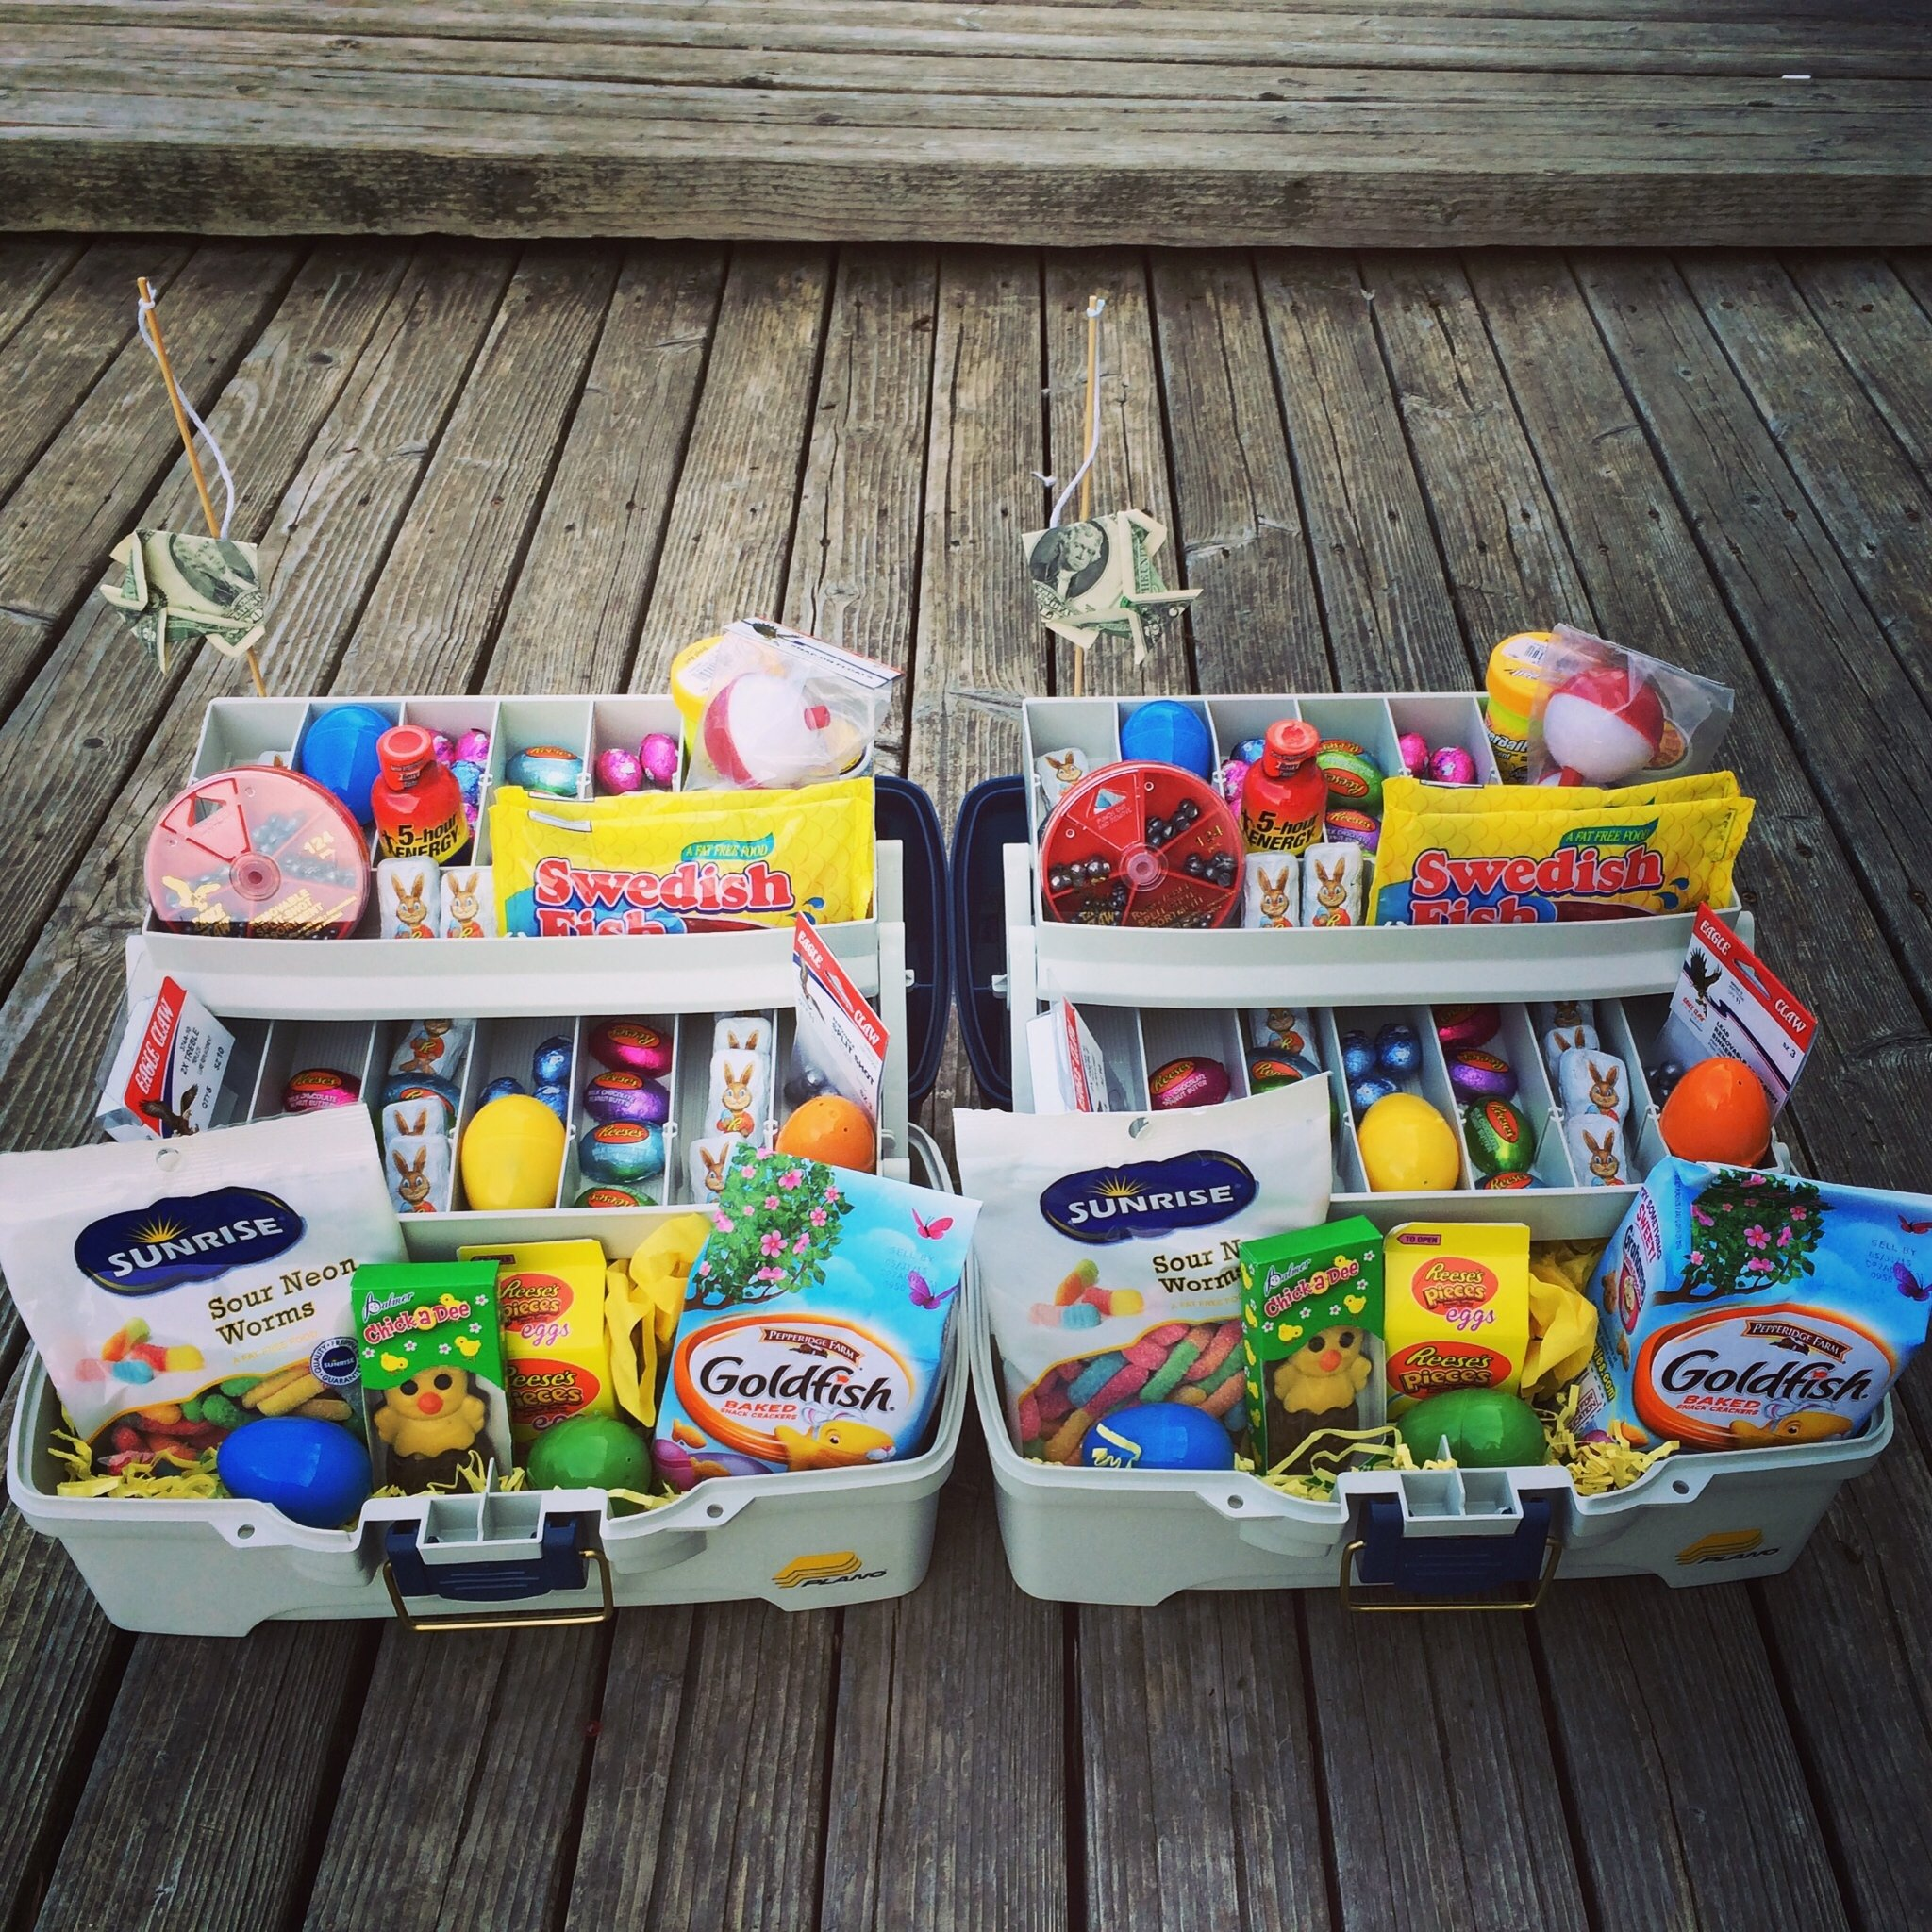 10 Beautiful Easter Baskets Ideas For Adults 25 great easter basket ideas crazy little projects 3 2020